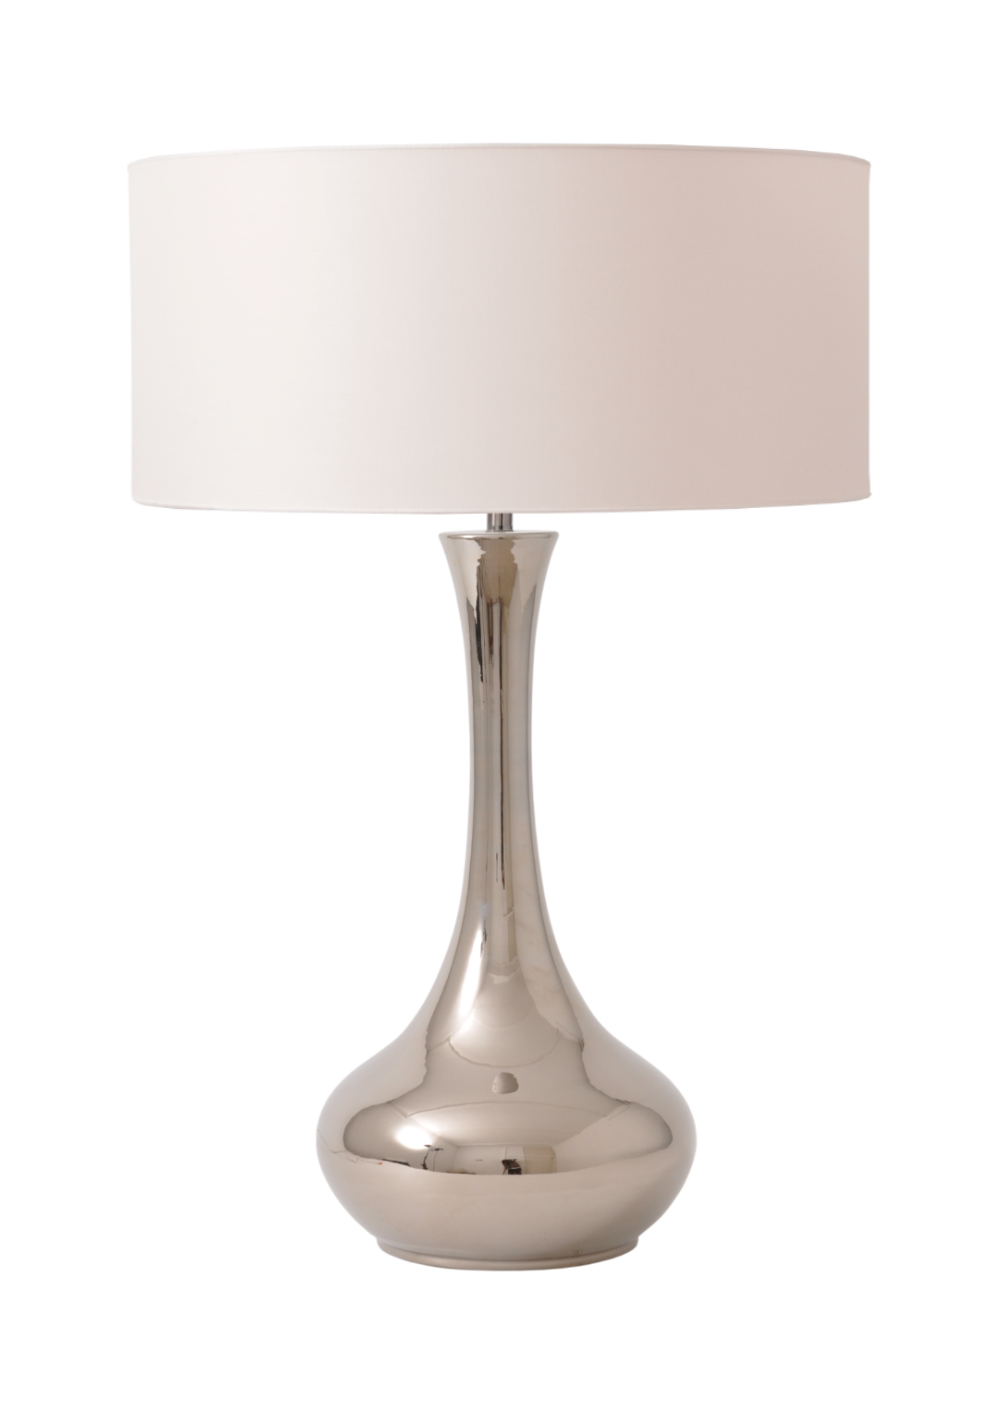 Table lamp Clotilde